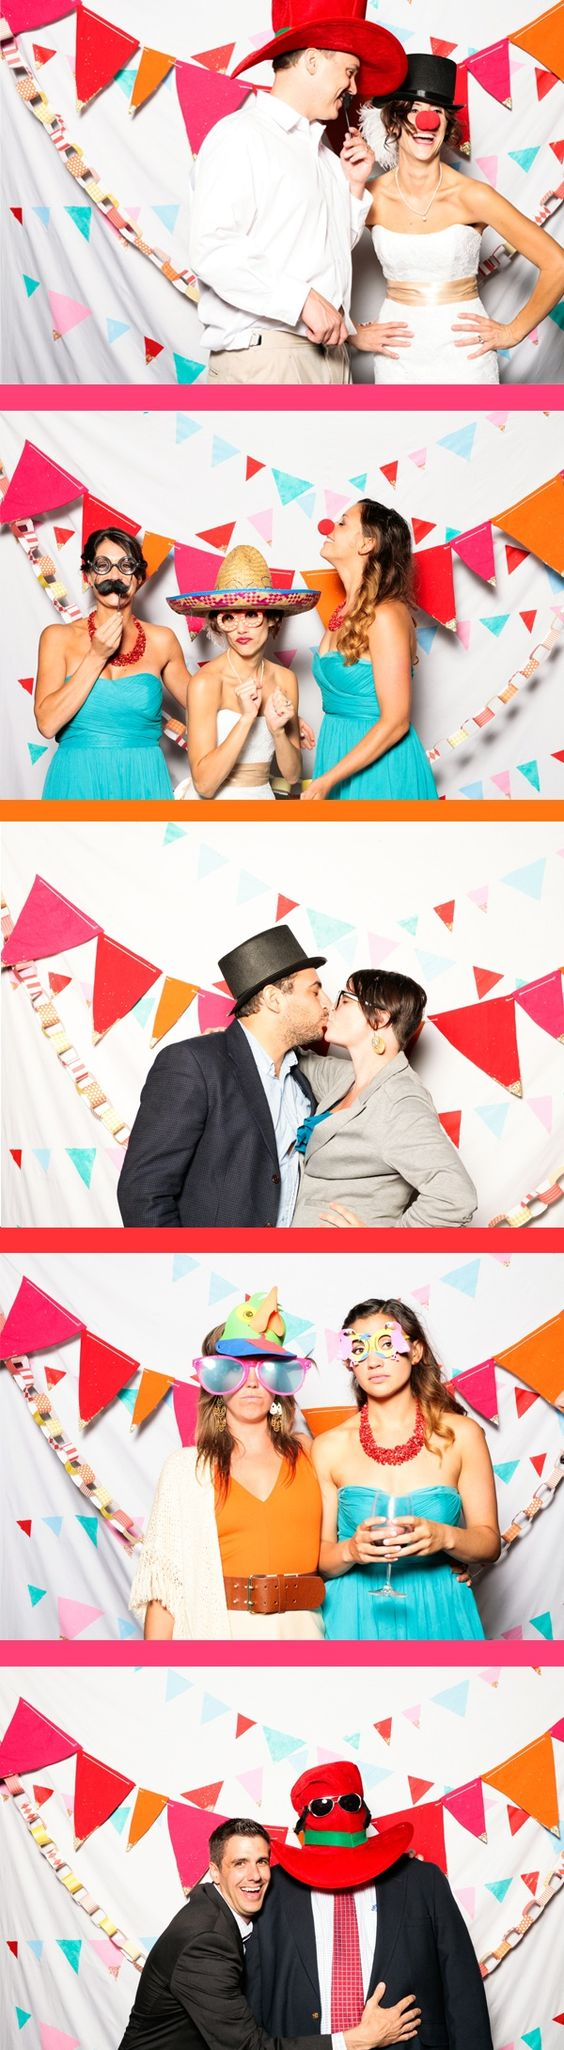 DIY Photo Booth Ideas & Free Printable Props | Hip Hip Hooray: